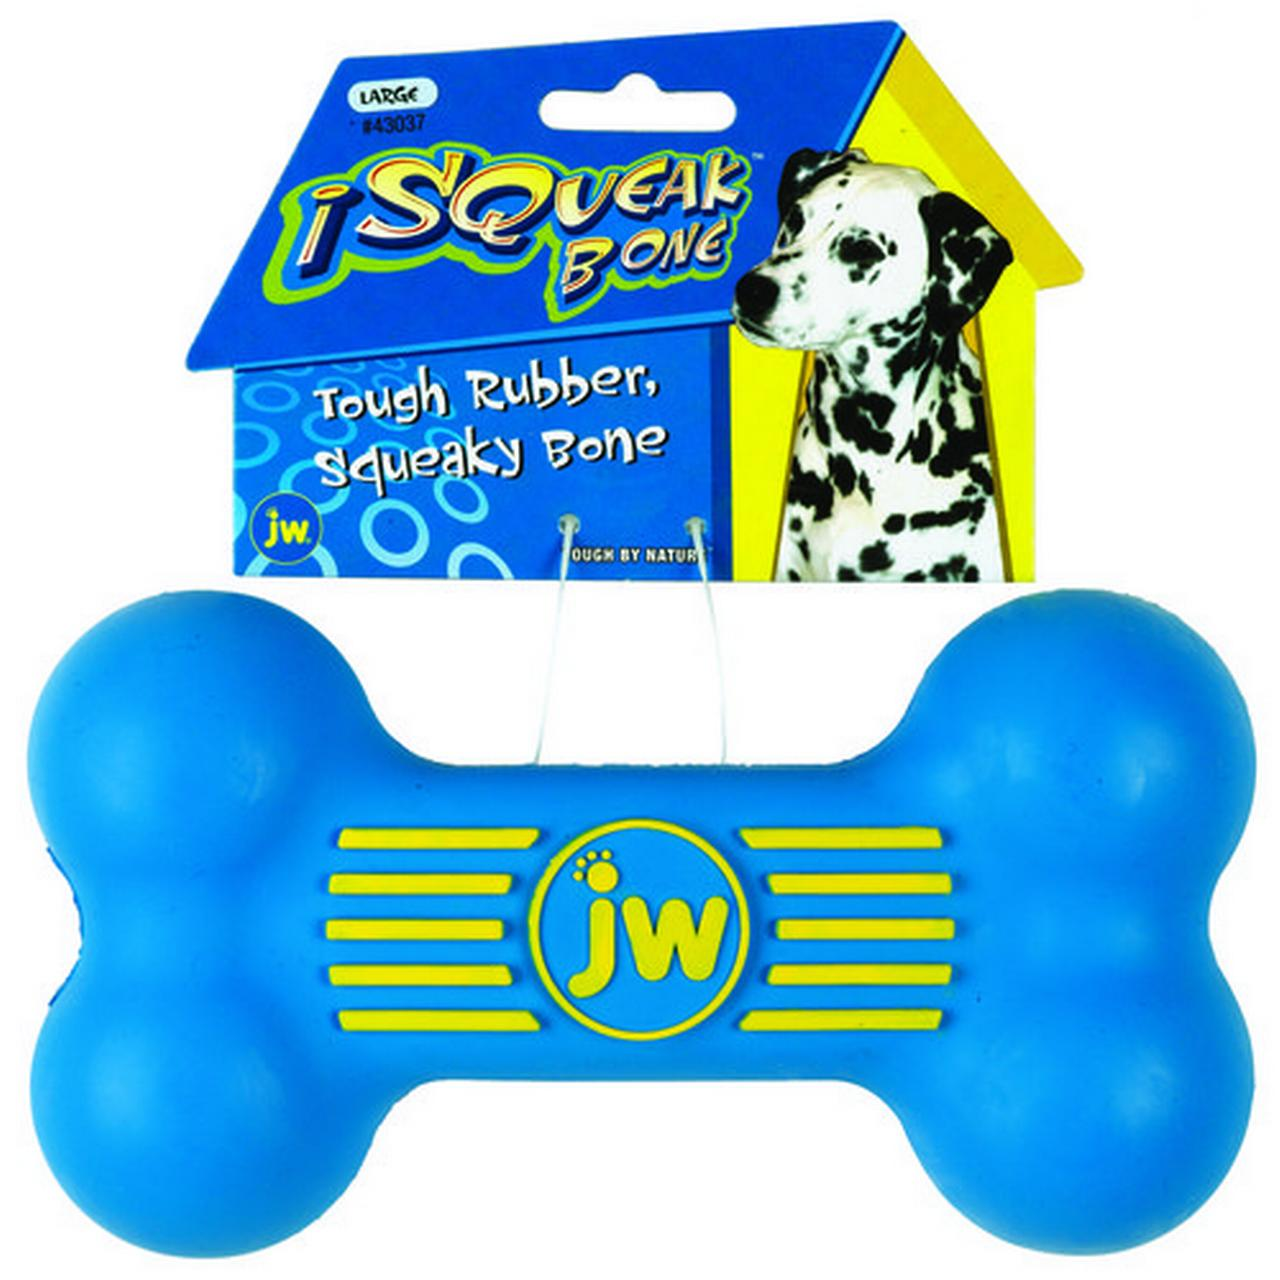 PETMATE Dog Toy, I-Squeak Bone, Large